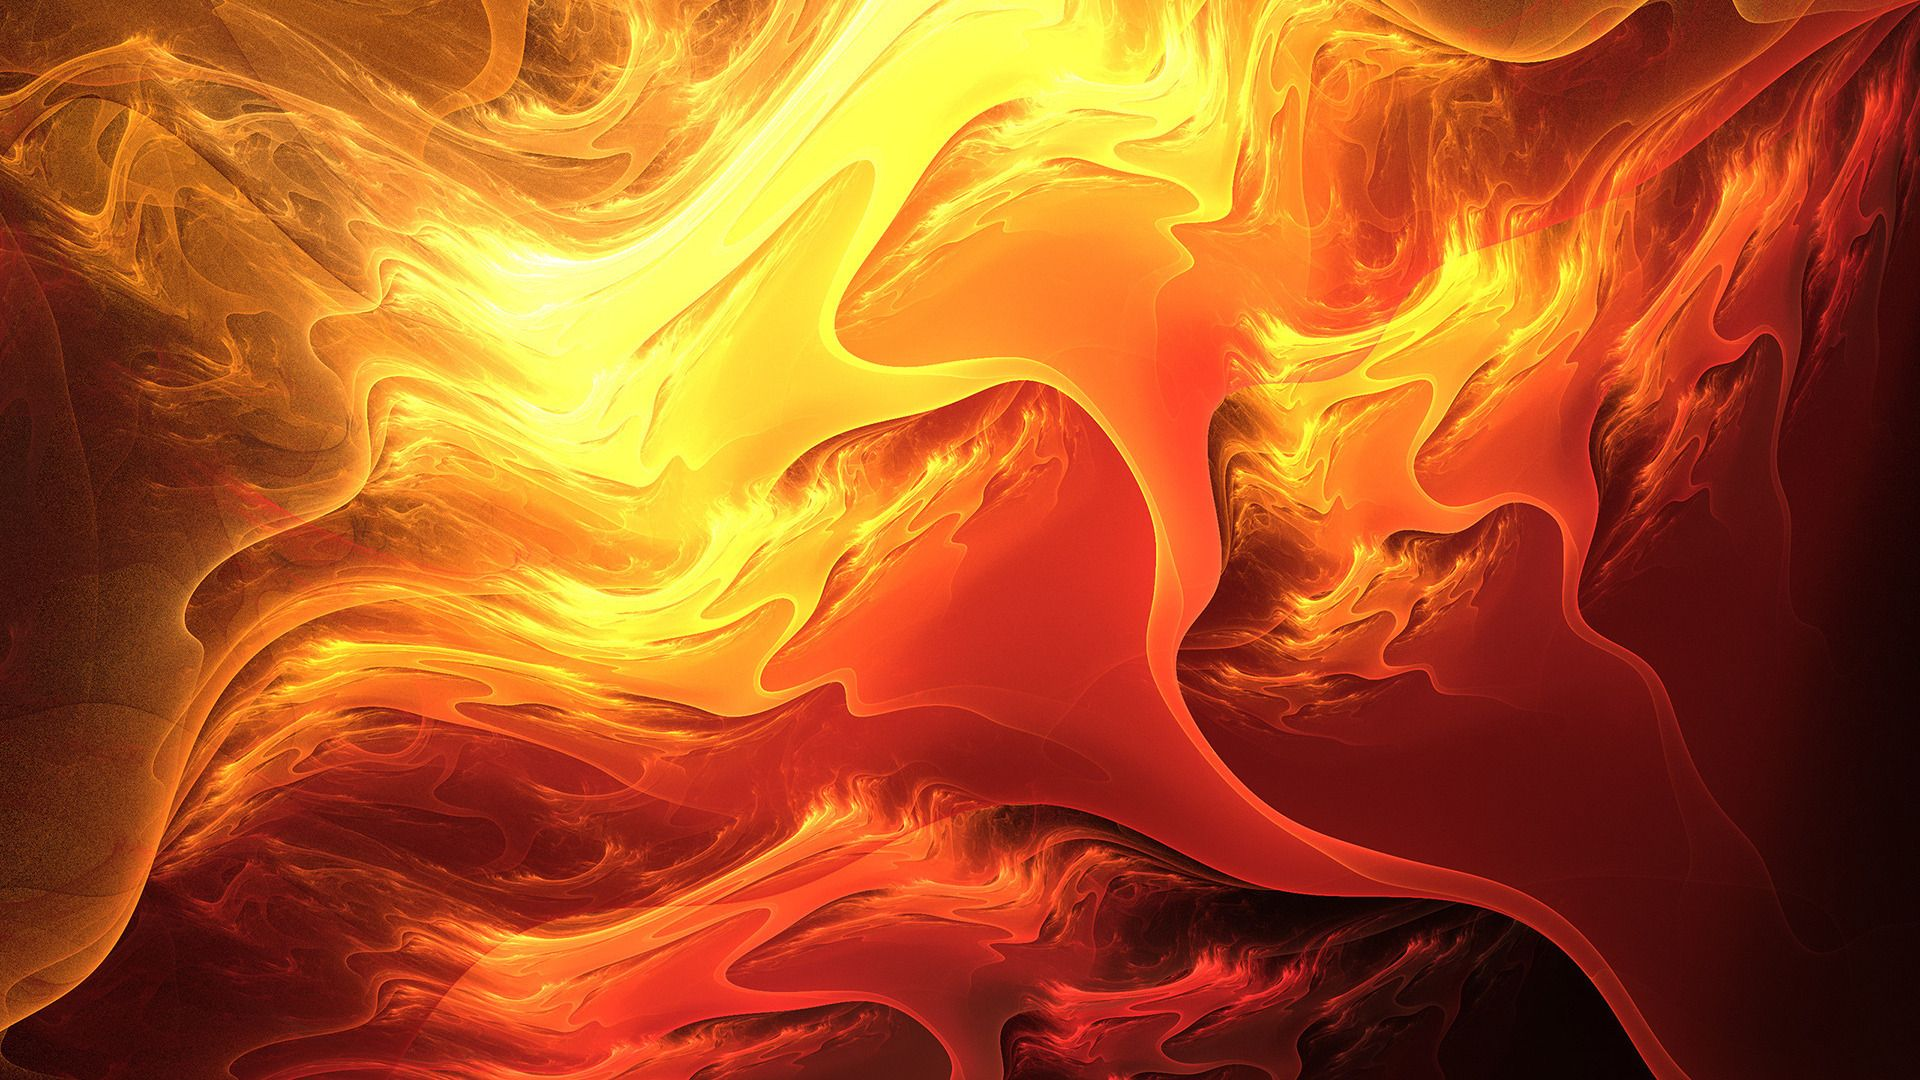 Cool Lava Wallpaper 25756 1920x1080 Px Hdwallsource Com Abstract Fire Art Bright Paintings